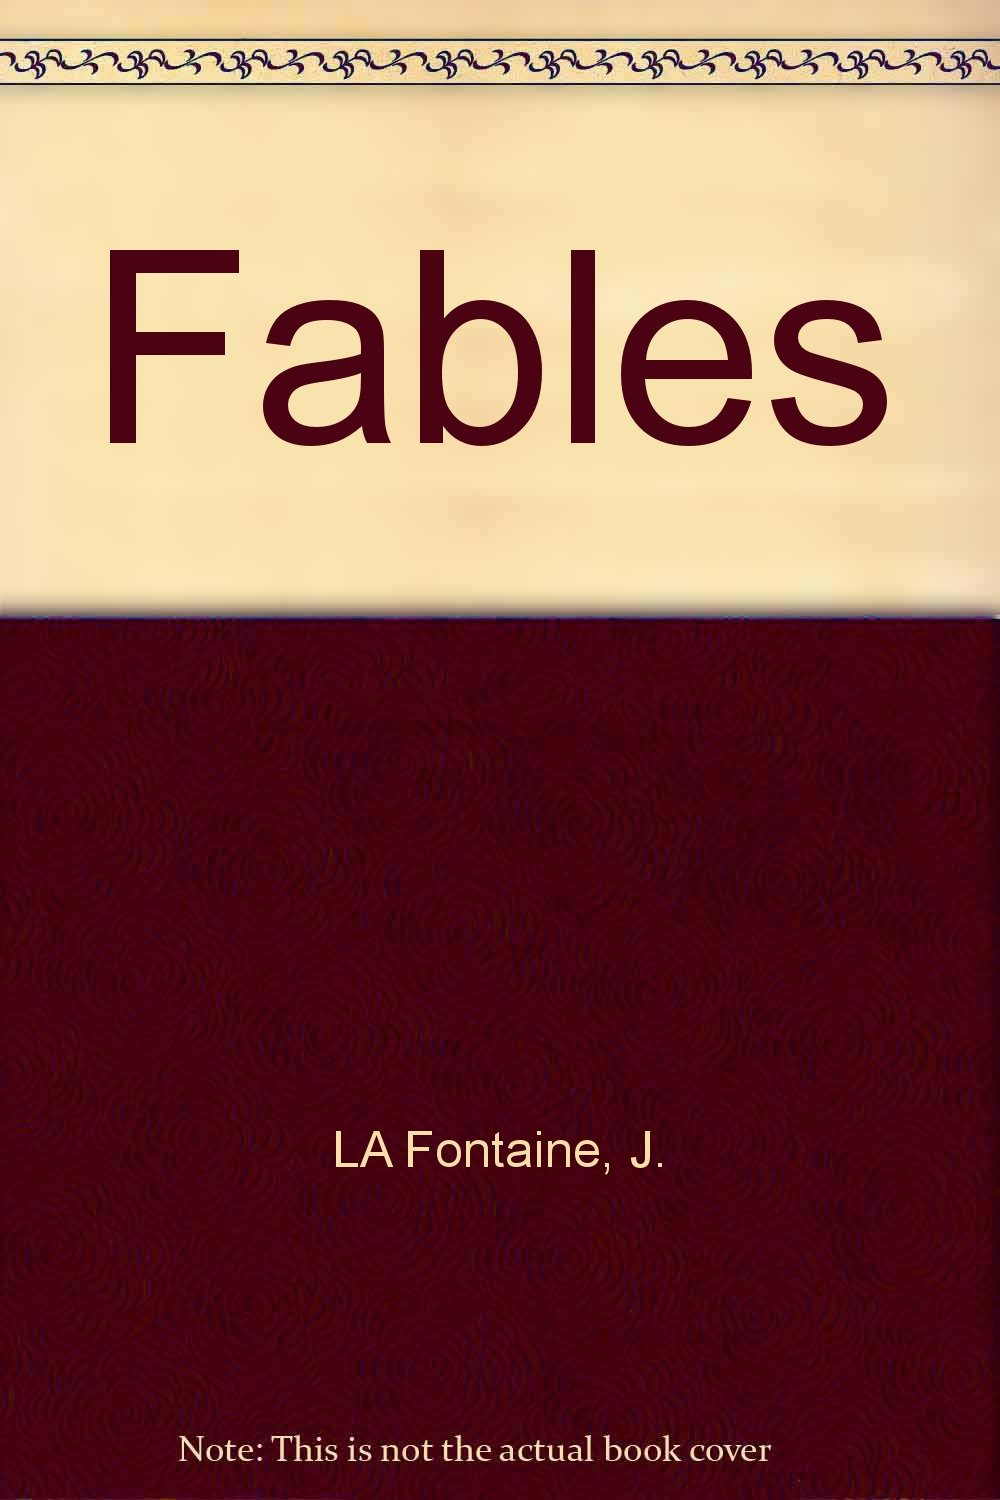 Fables written by Jean de La Fontaine